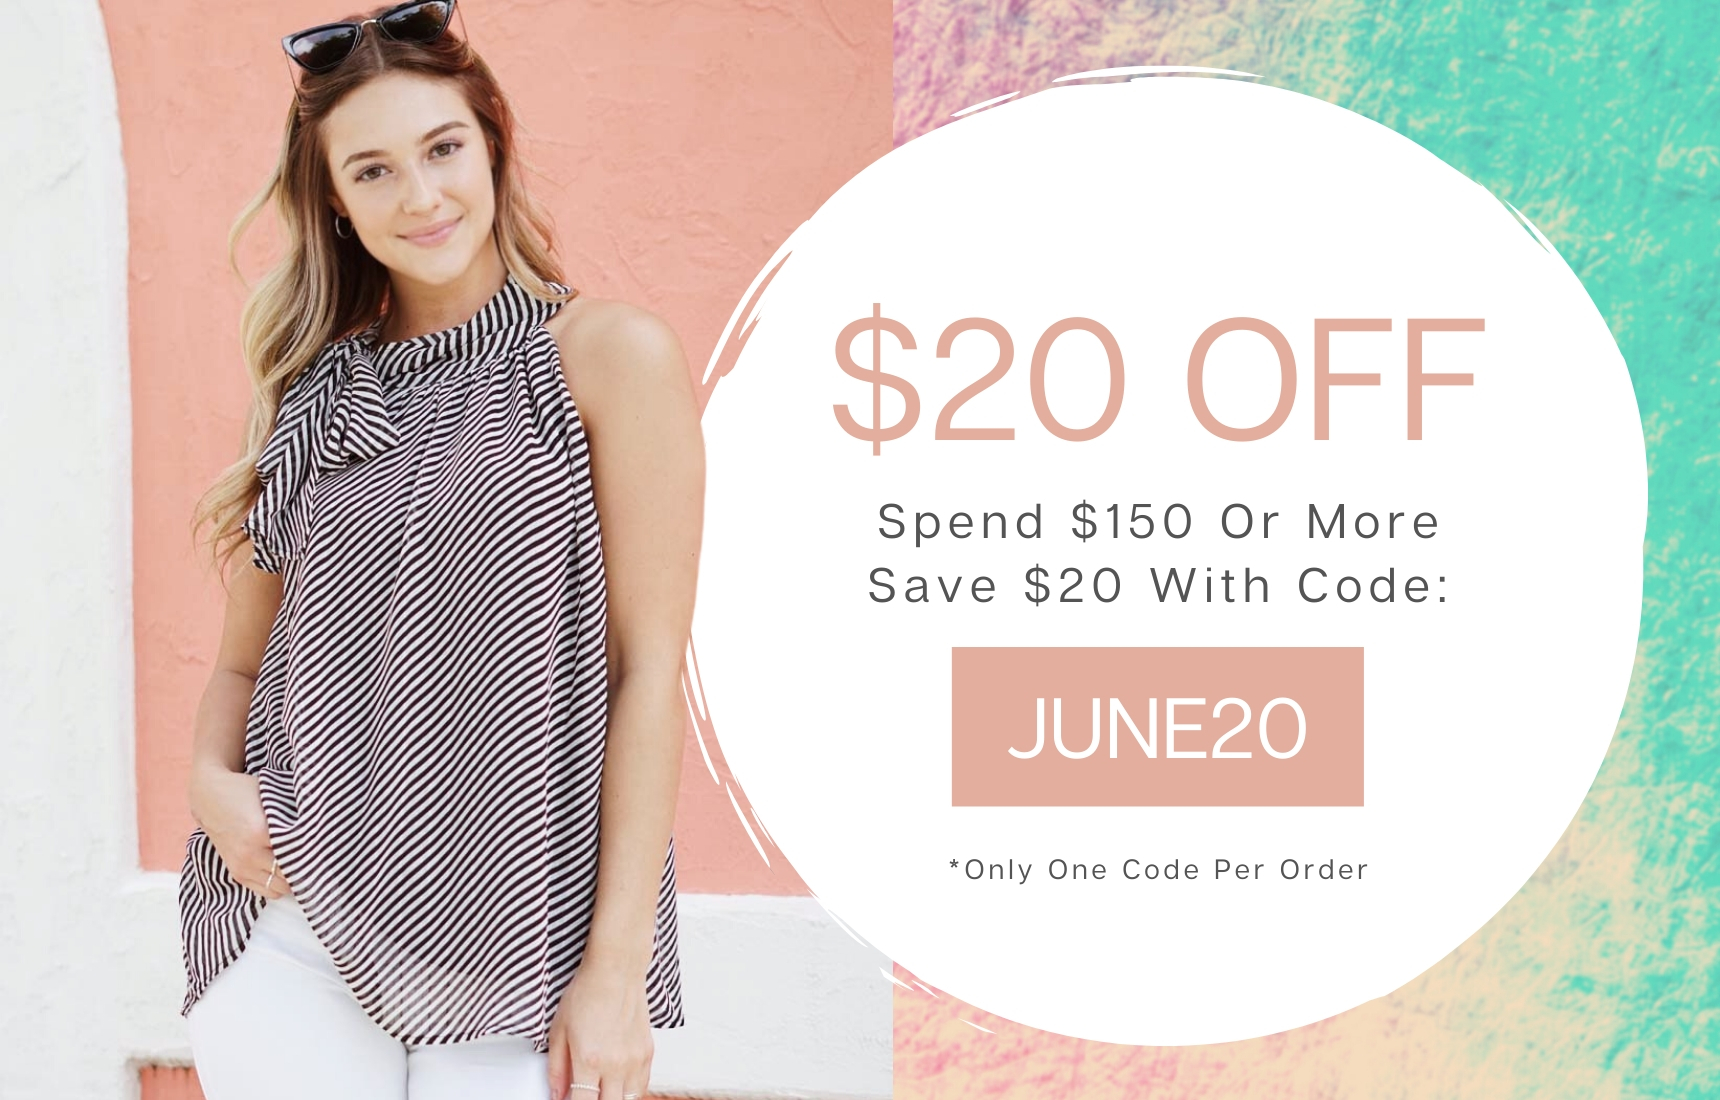 Spend $150 or more; receive $20 off